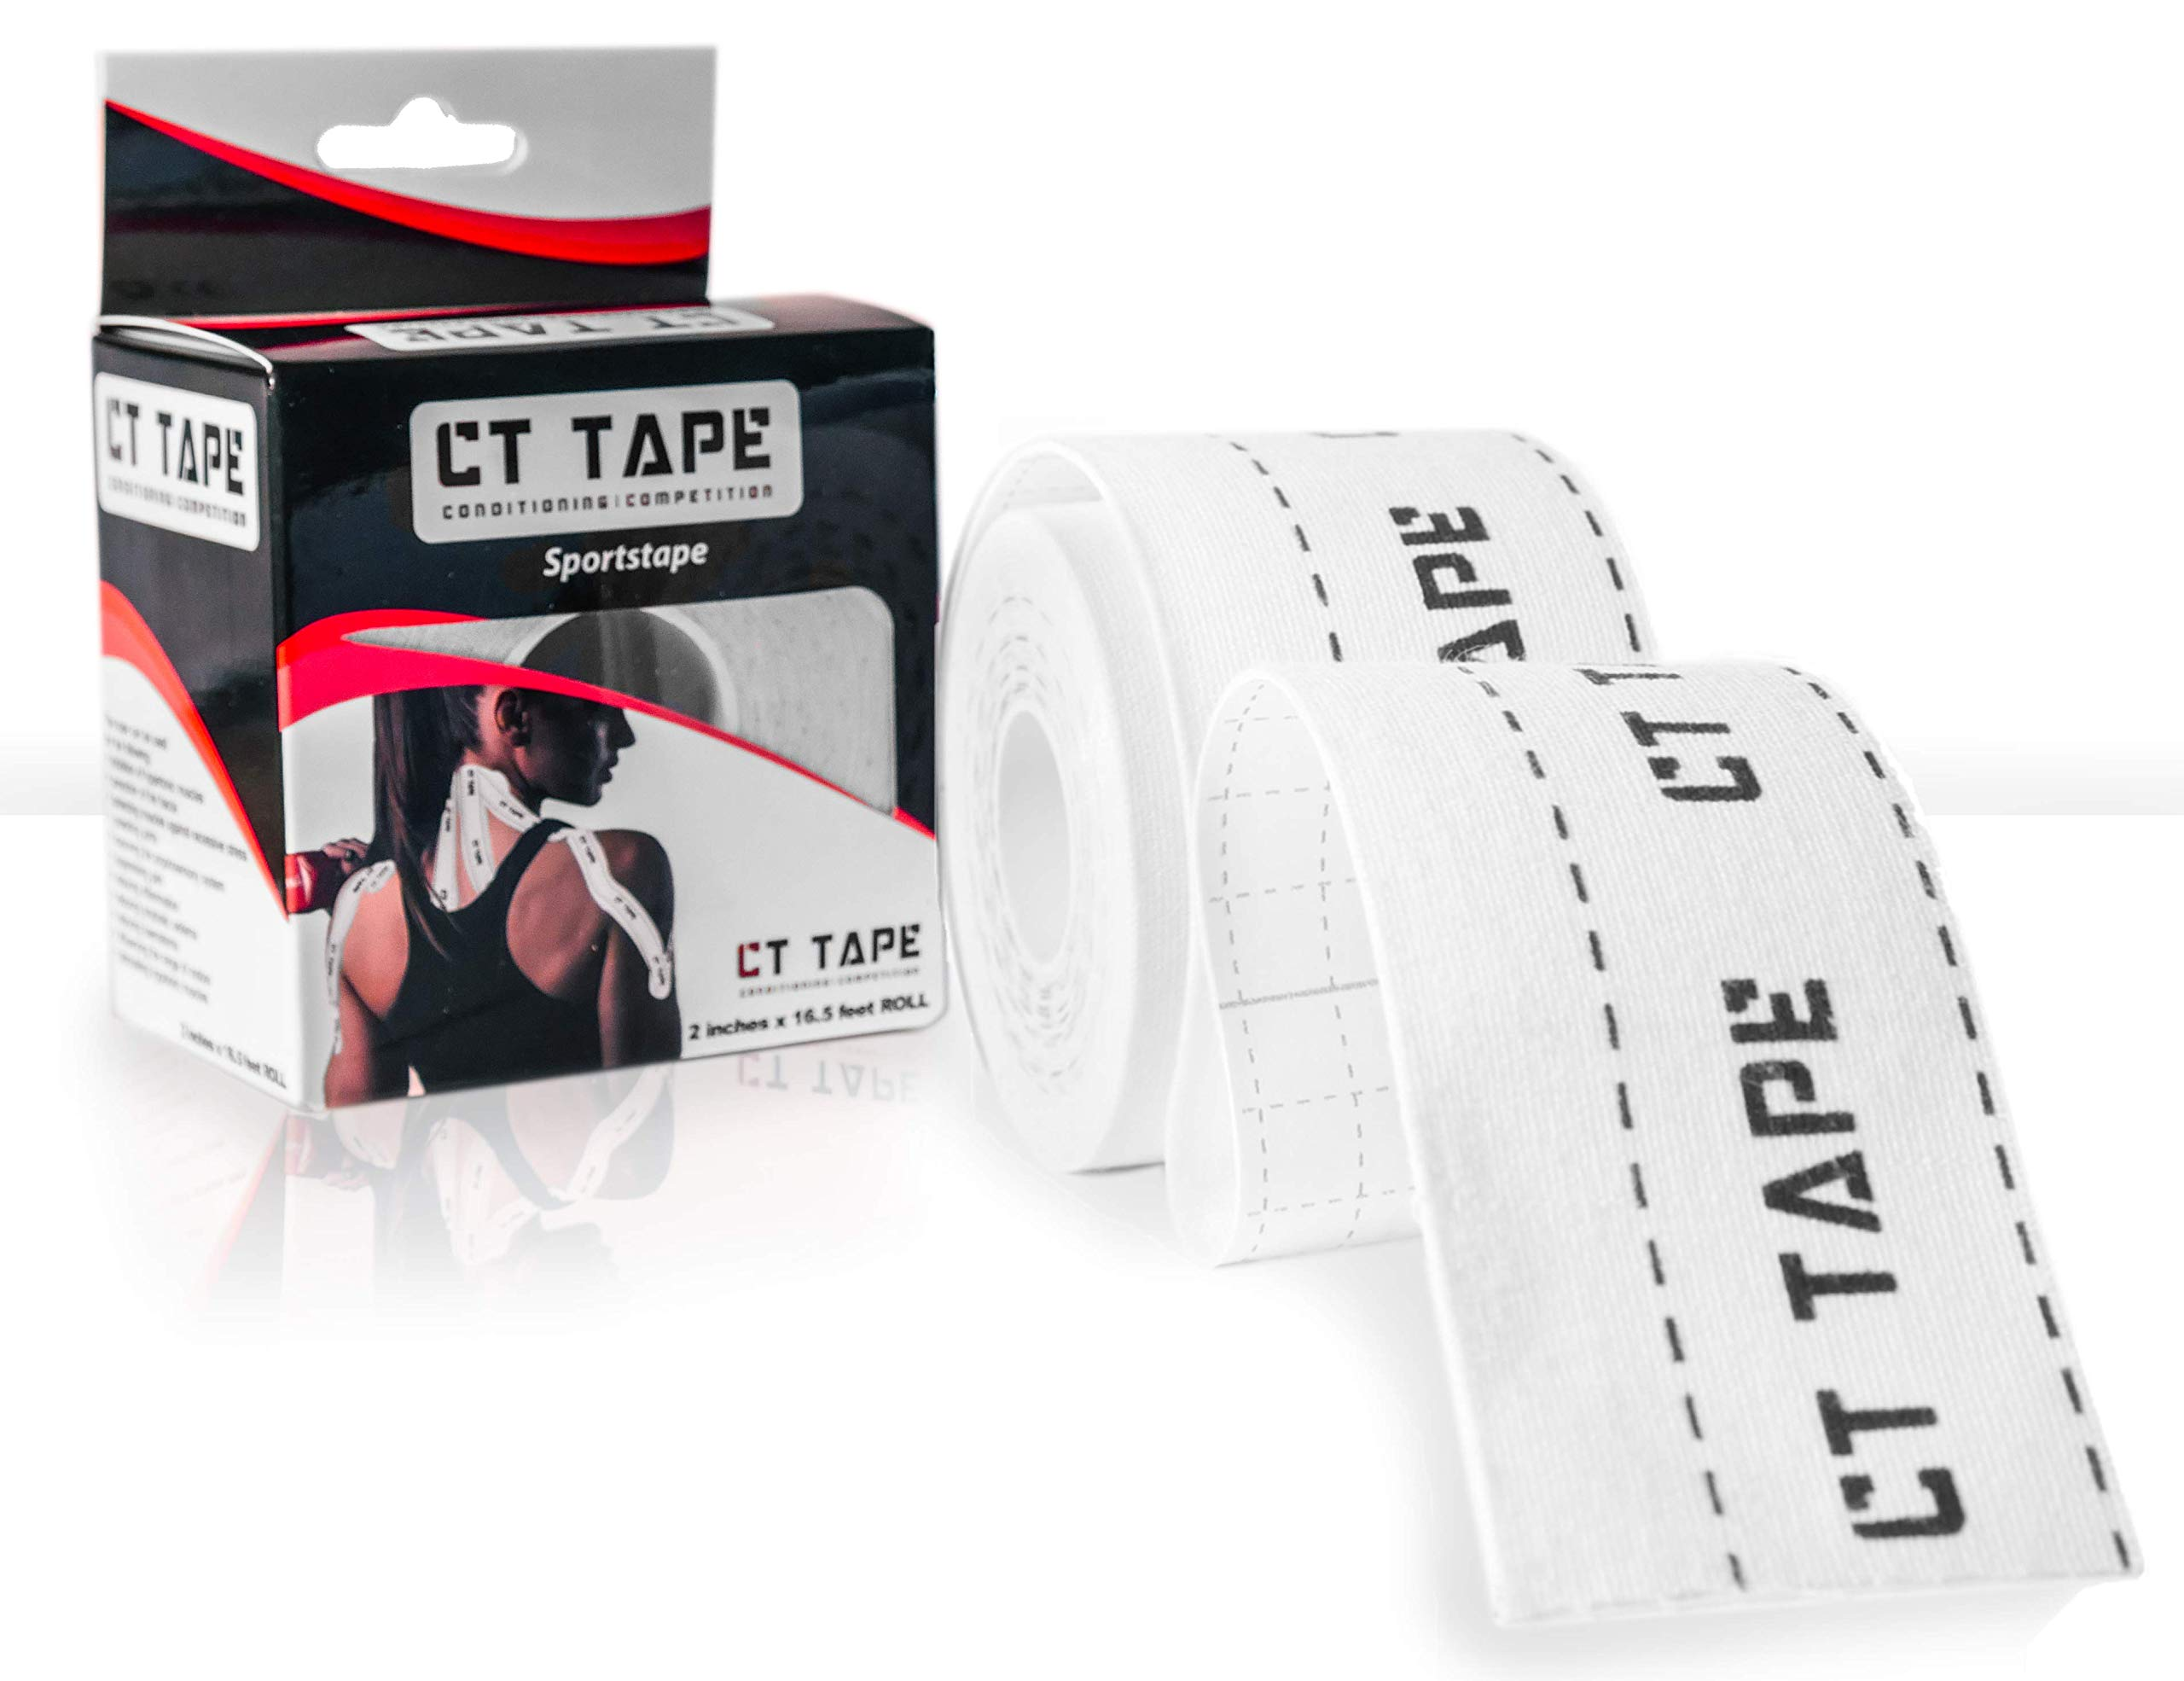 CT Tape Sports & Kinesiology Recovery Tape for Sensitive Skin - Best Breathable, Latex Free Pain Relief Therapeutic Kinesio Tape - Performance Adhesive For Muscles, Knee, Shoulder, Ankle, Back-16.5 FT